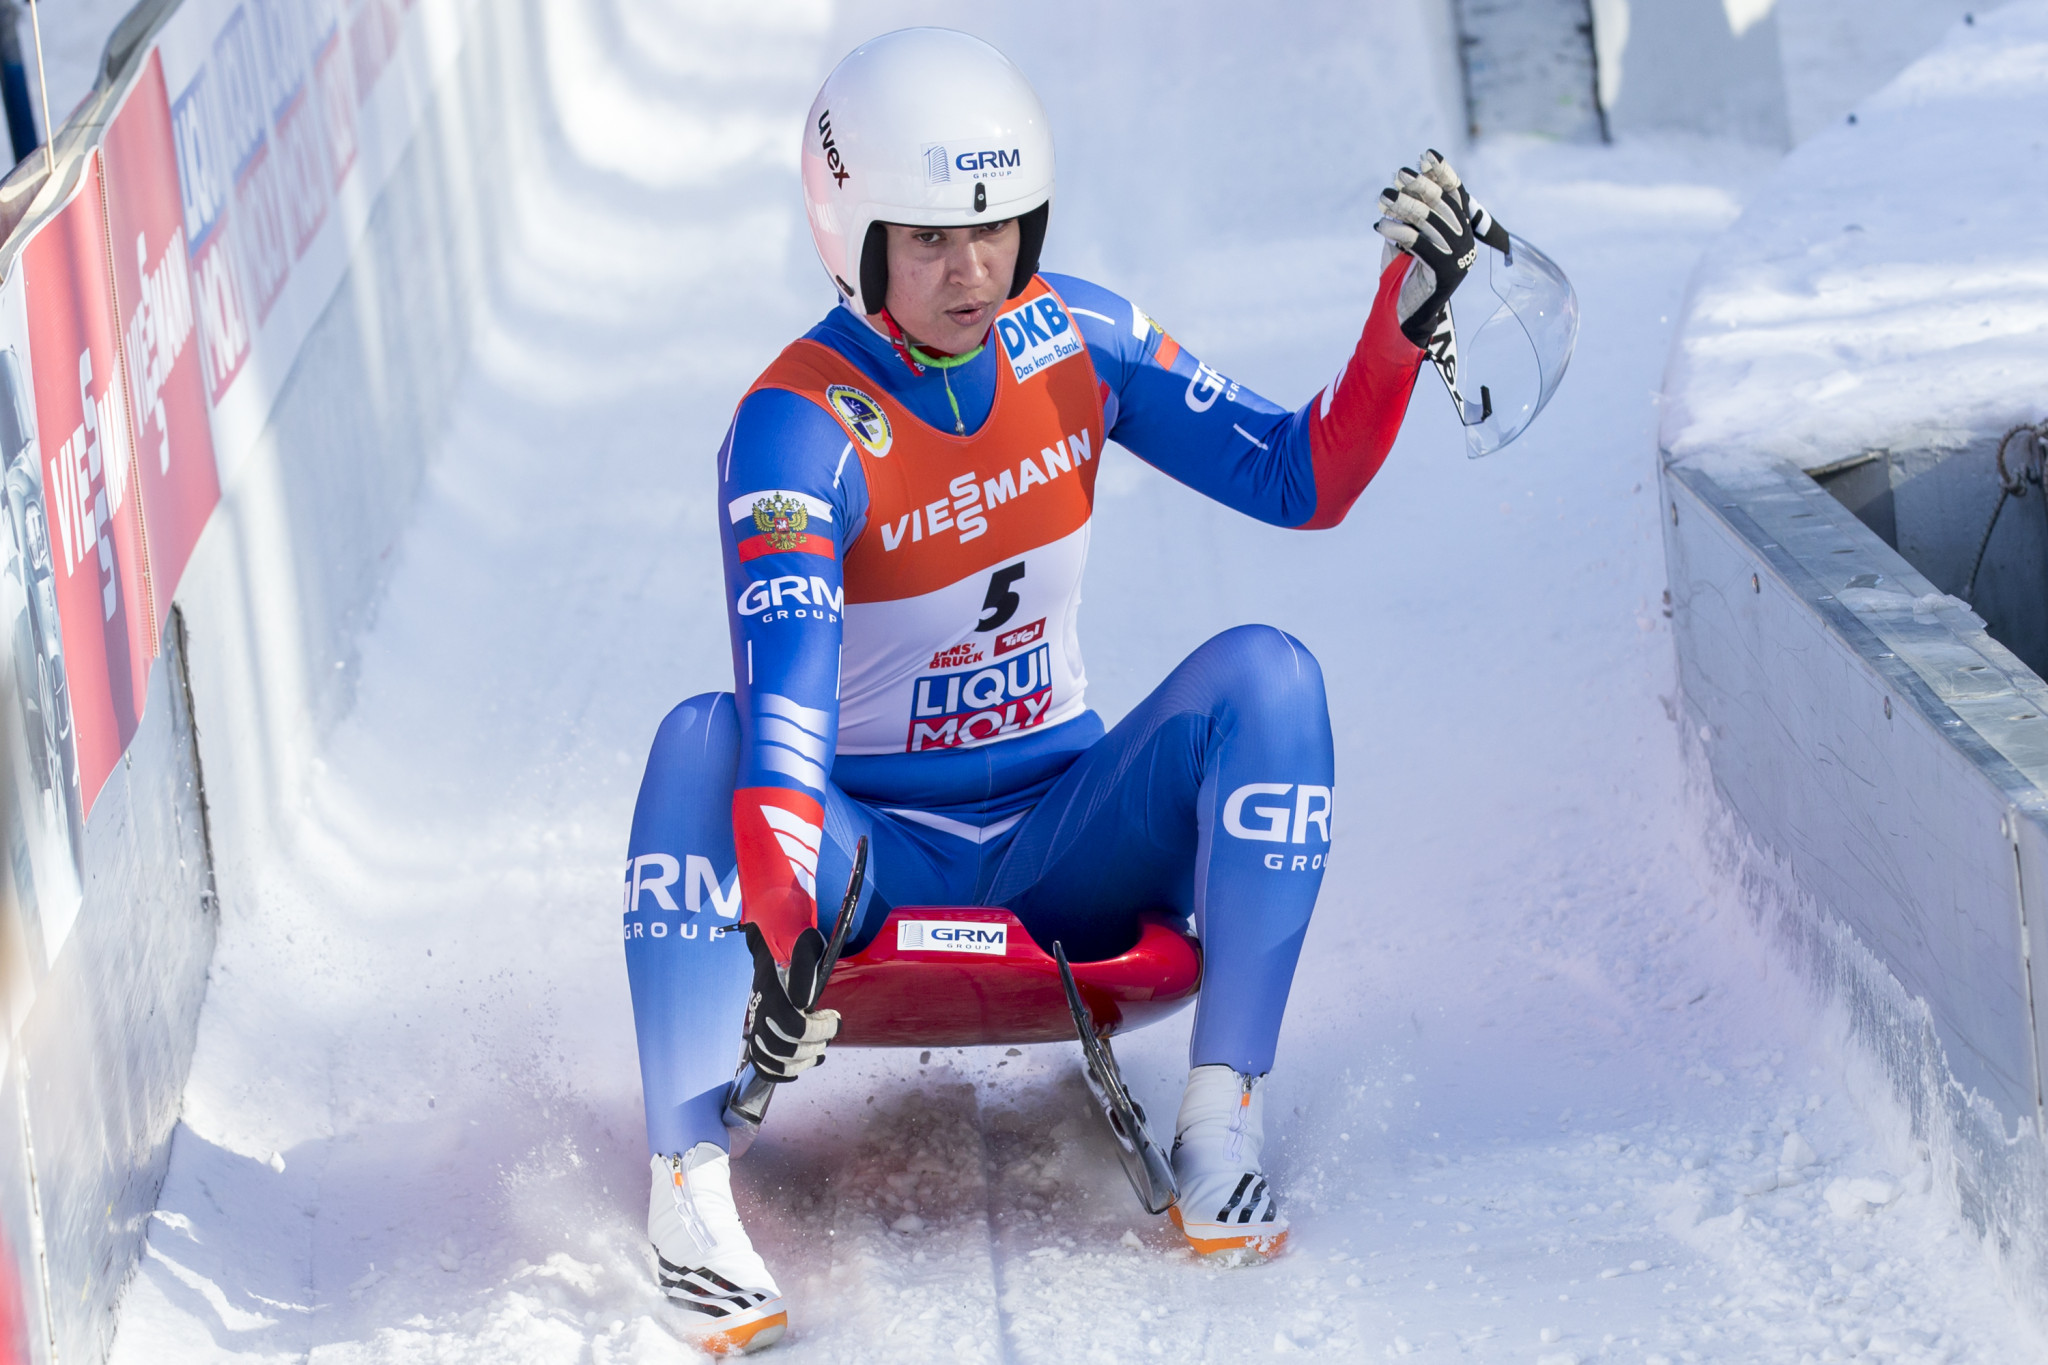 Russian at heart of doping crisis wins FIL World Cup in Sigulda